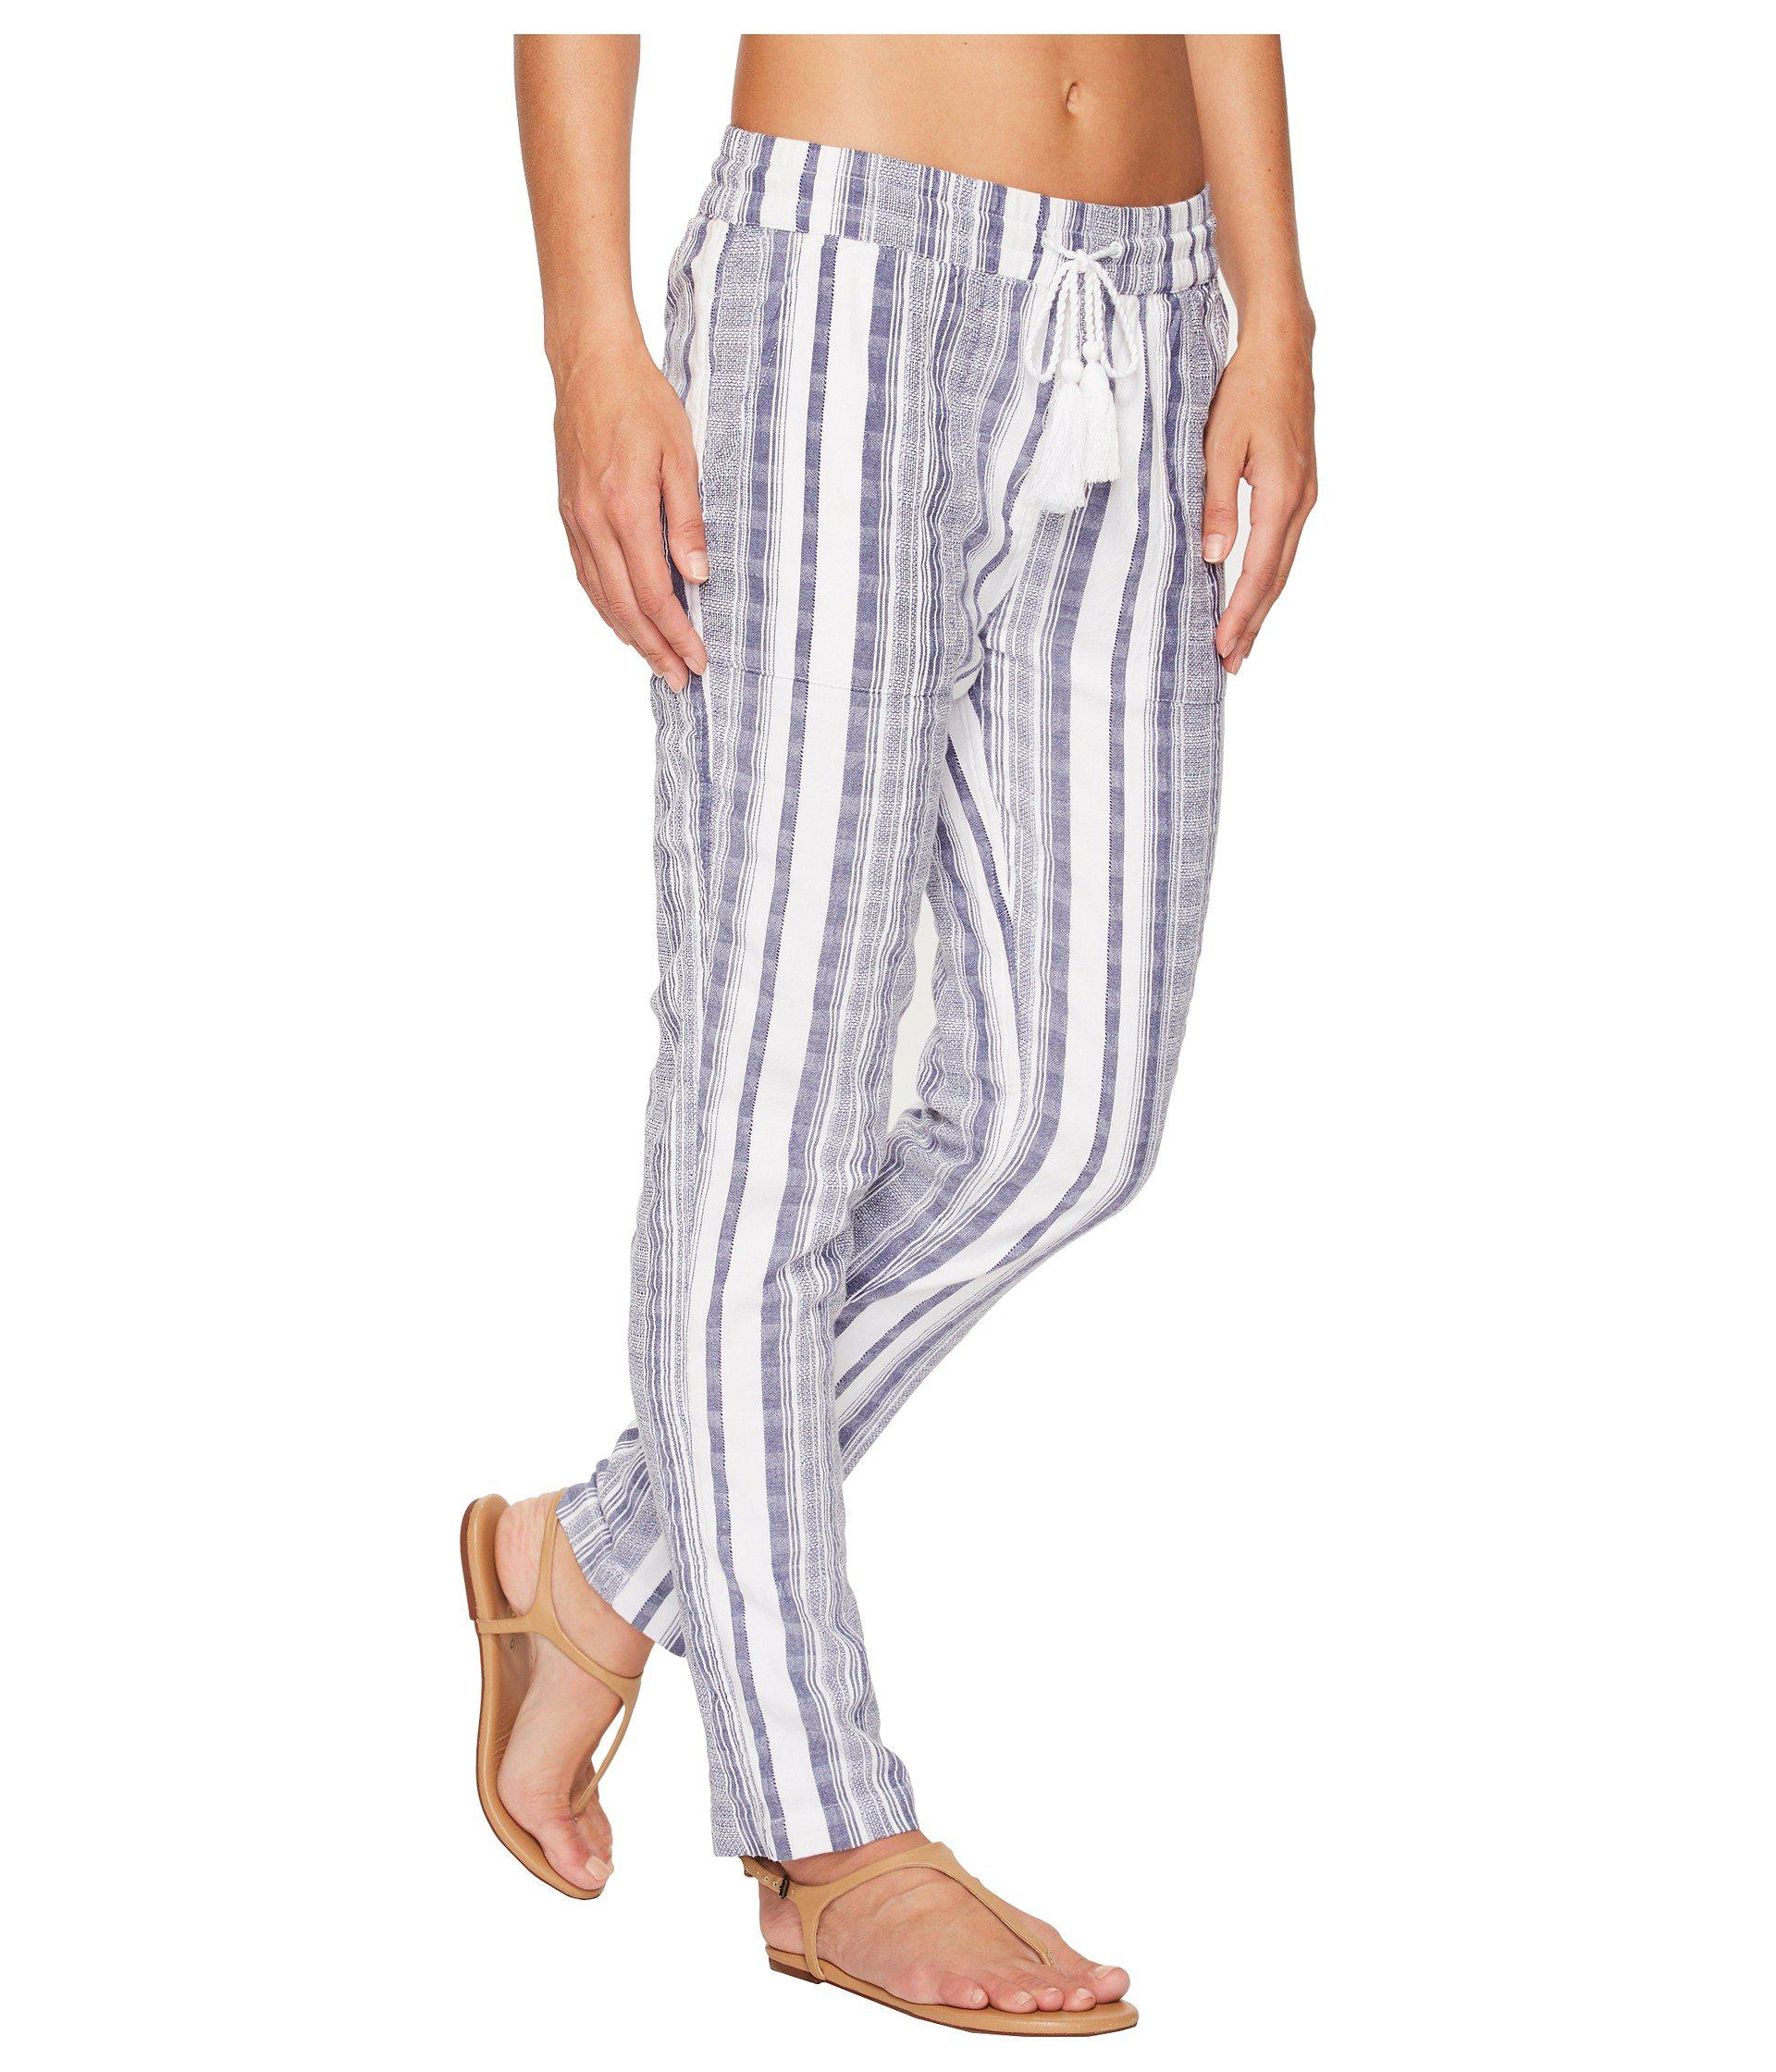 93307c51a8 Tommy Bahama Yarn Dye Stripe Beach Jogger Bottom Cover-up in White ...